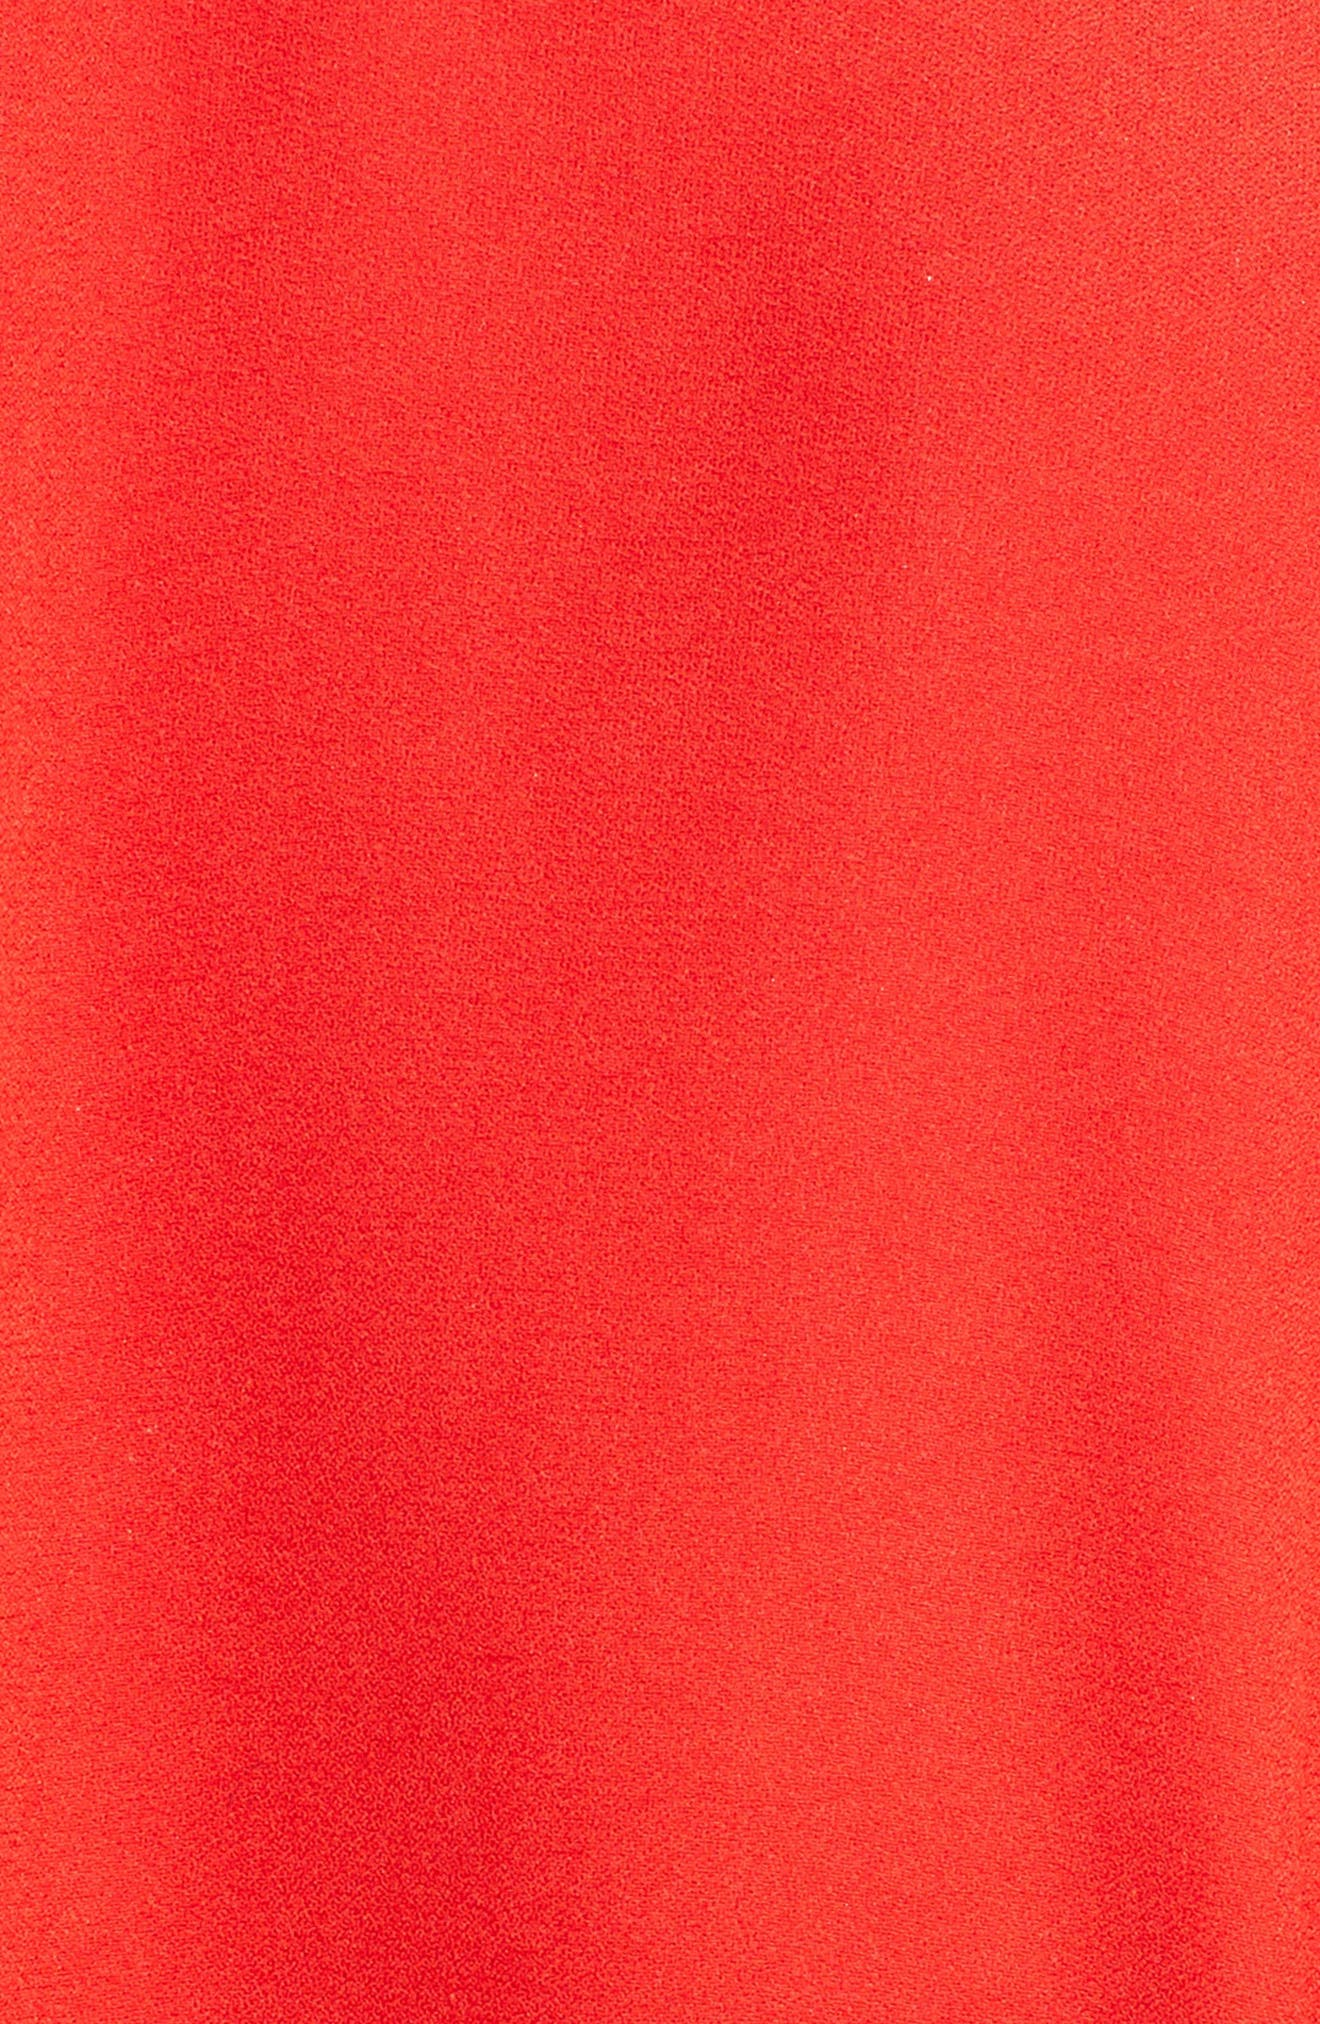 Cape Sleeve Satin Crepe Gown,                             Alternate thumbnail 5, color,                             LUST RED